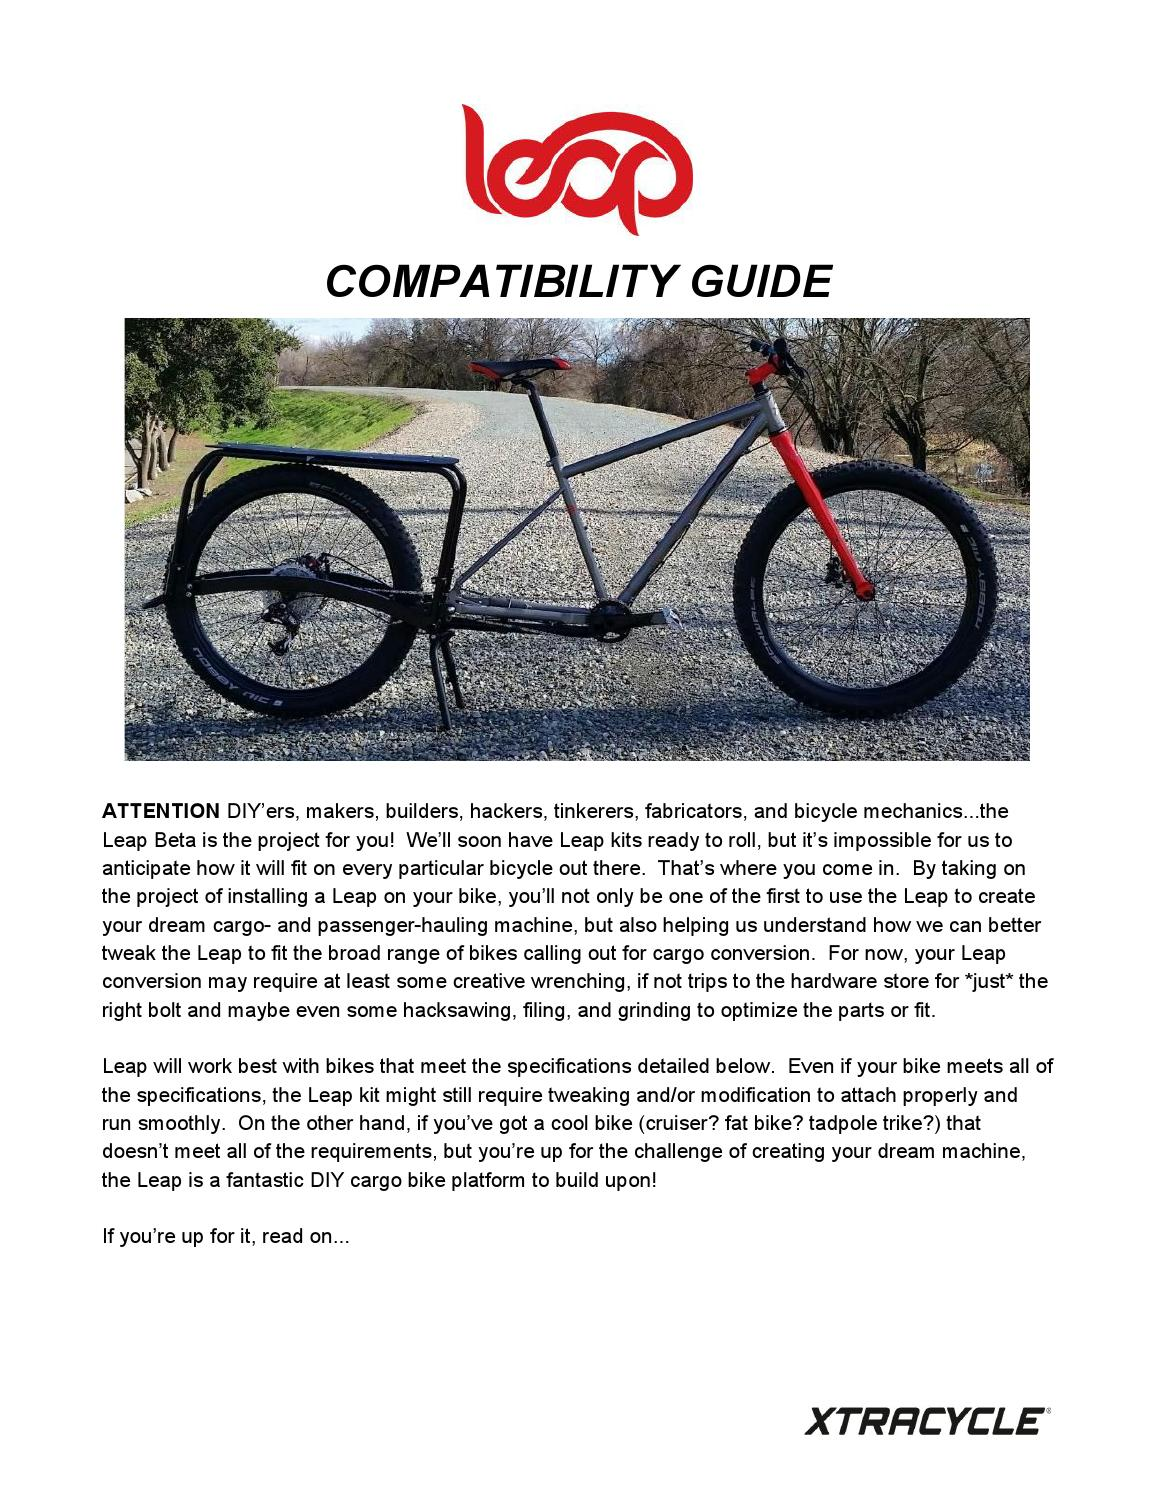 Xtracycle Leap Compatability Guide by Practical Cycles - Issuu